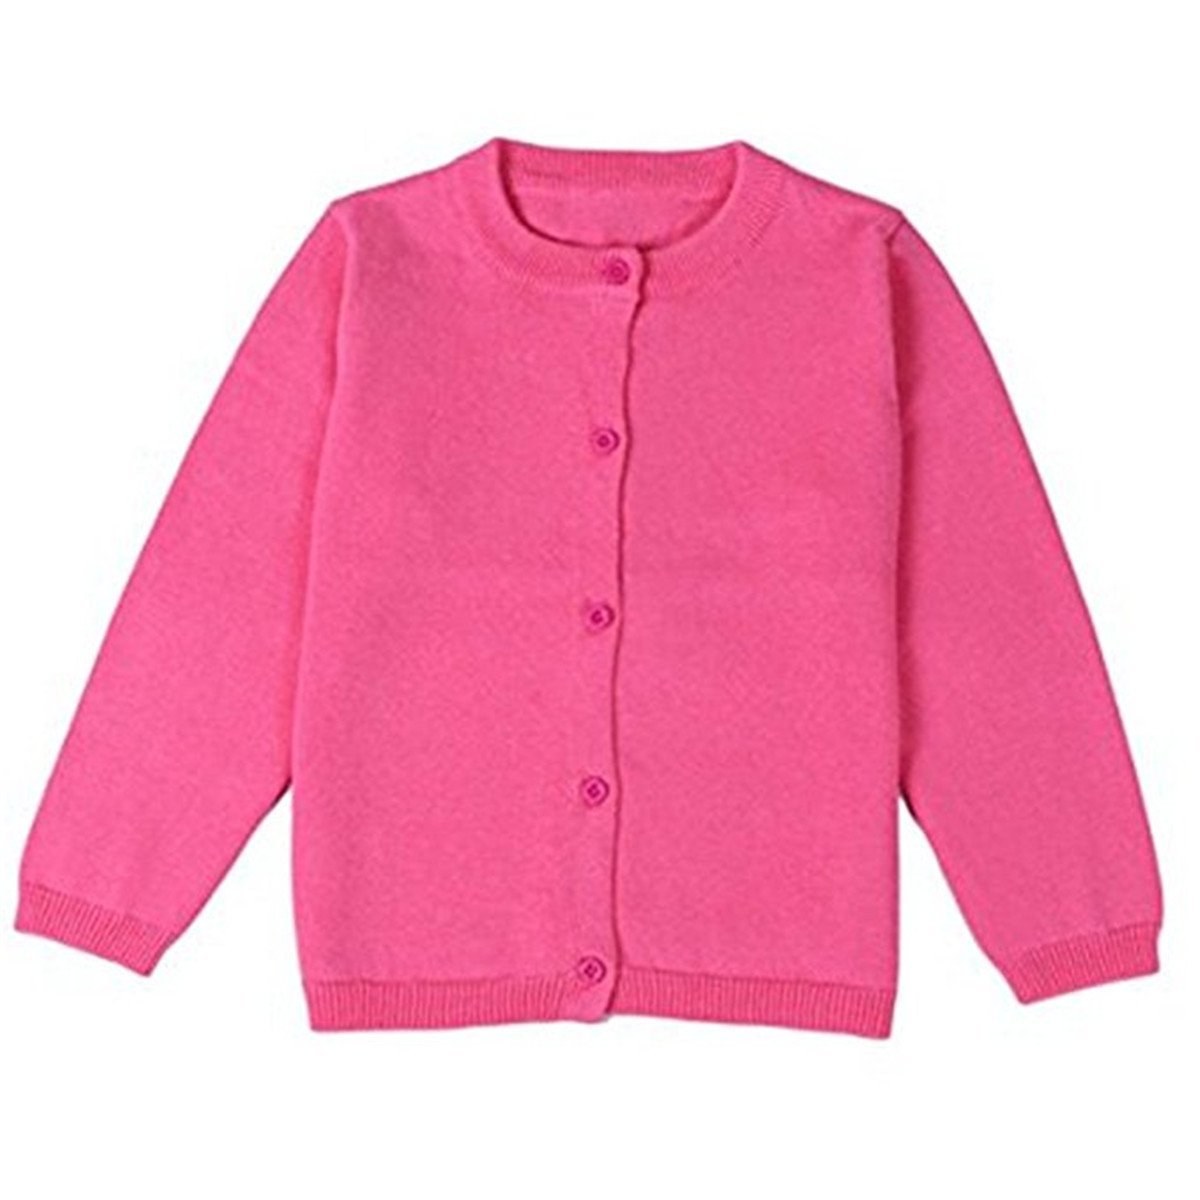 Maylife Little Girls Cute Crew Neck Button-Down Solid Fine Knit Cardigan Sweaters by Maylife (Image #1)